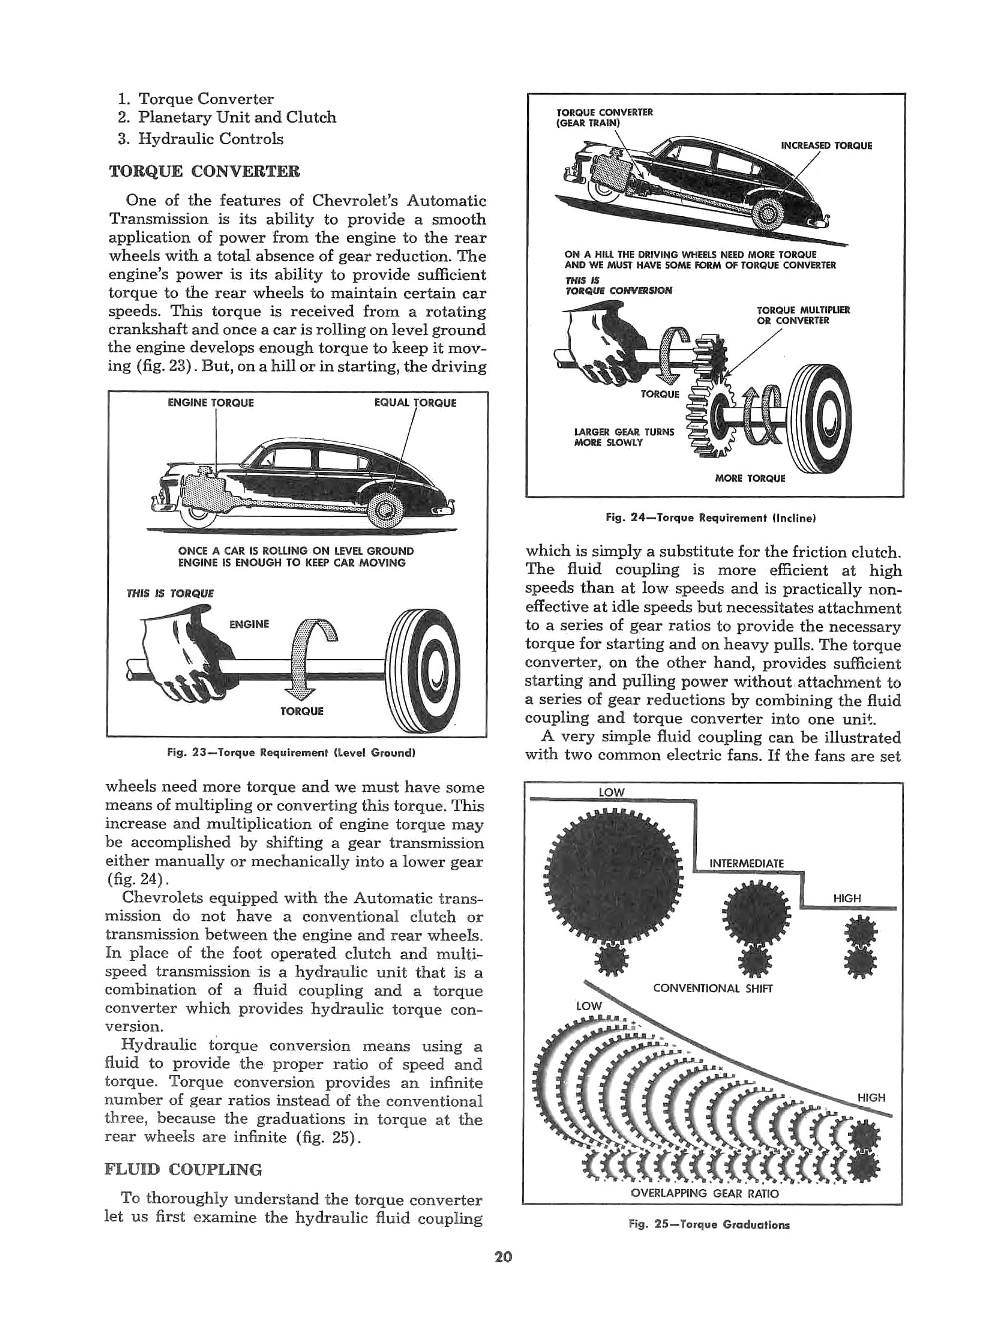 1950 CHEVROLET PASSENGER CAR MAINTENANCE MANUAL